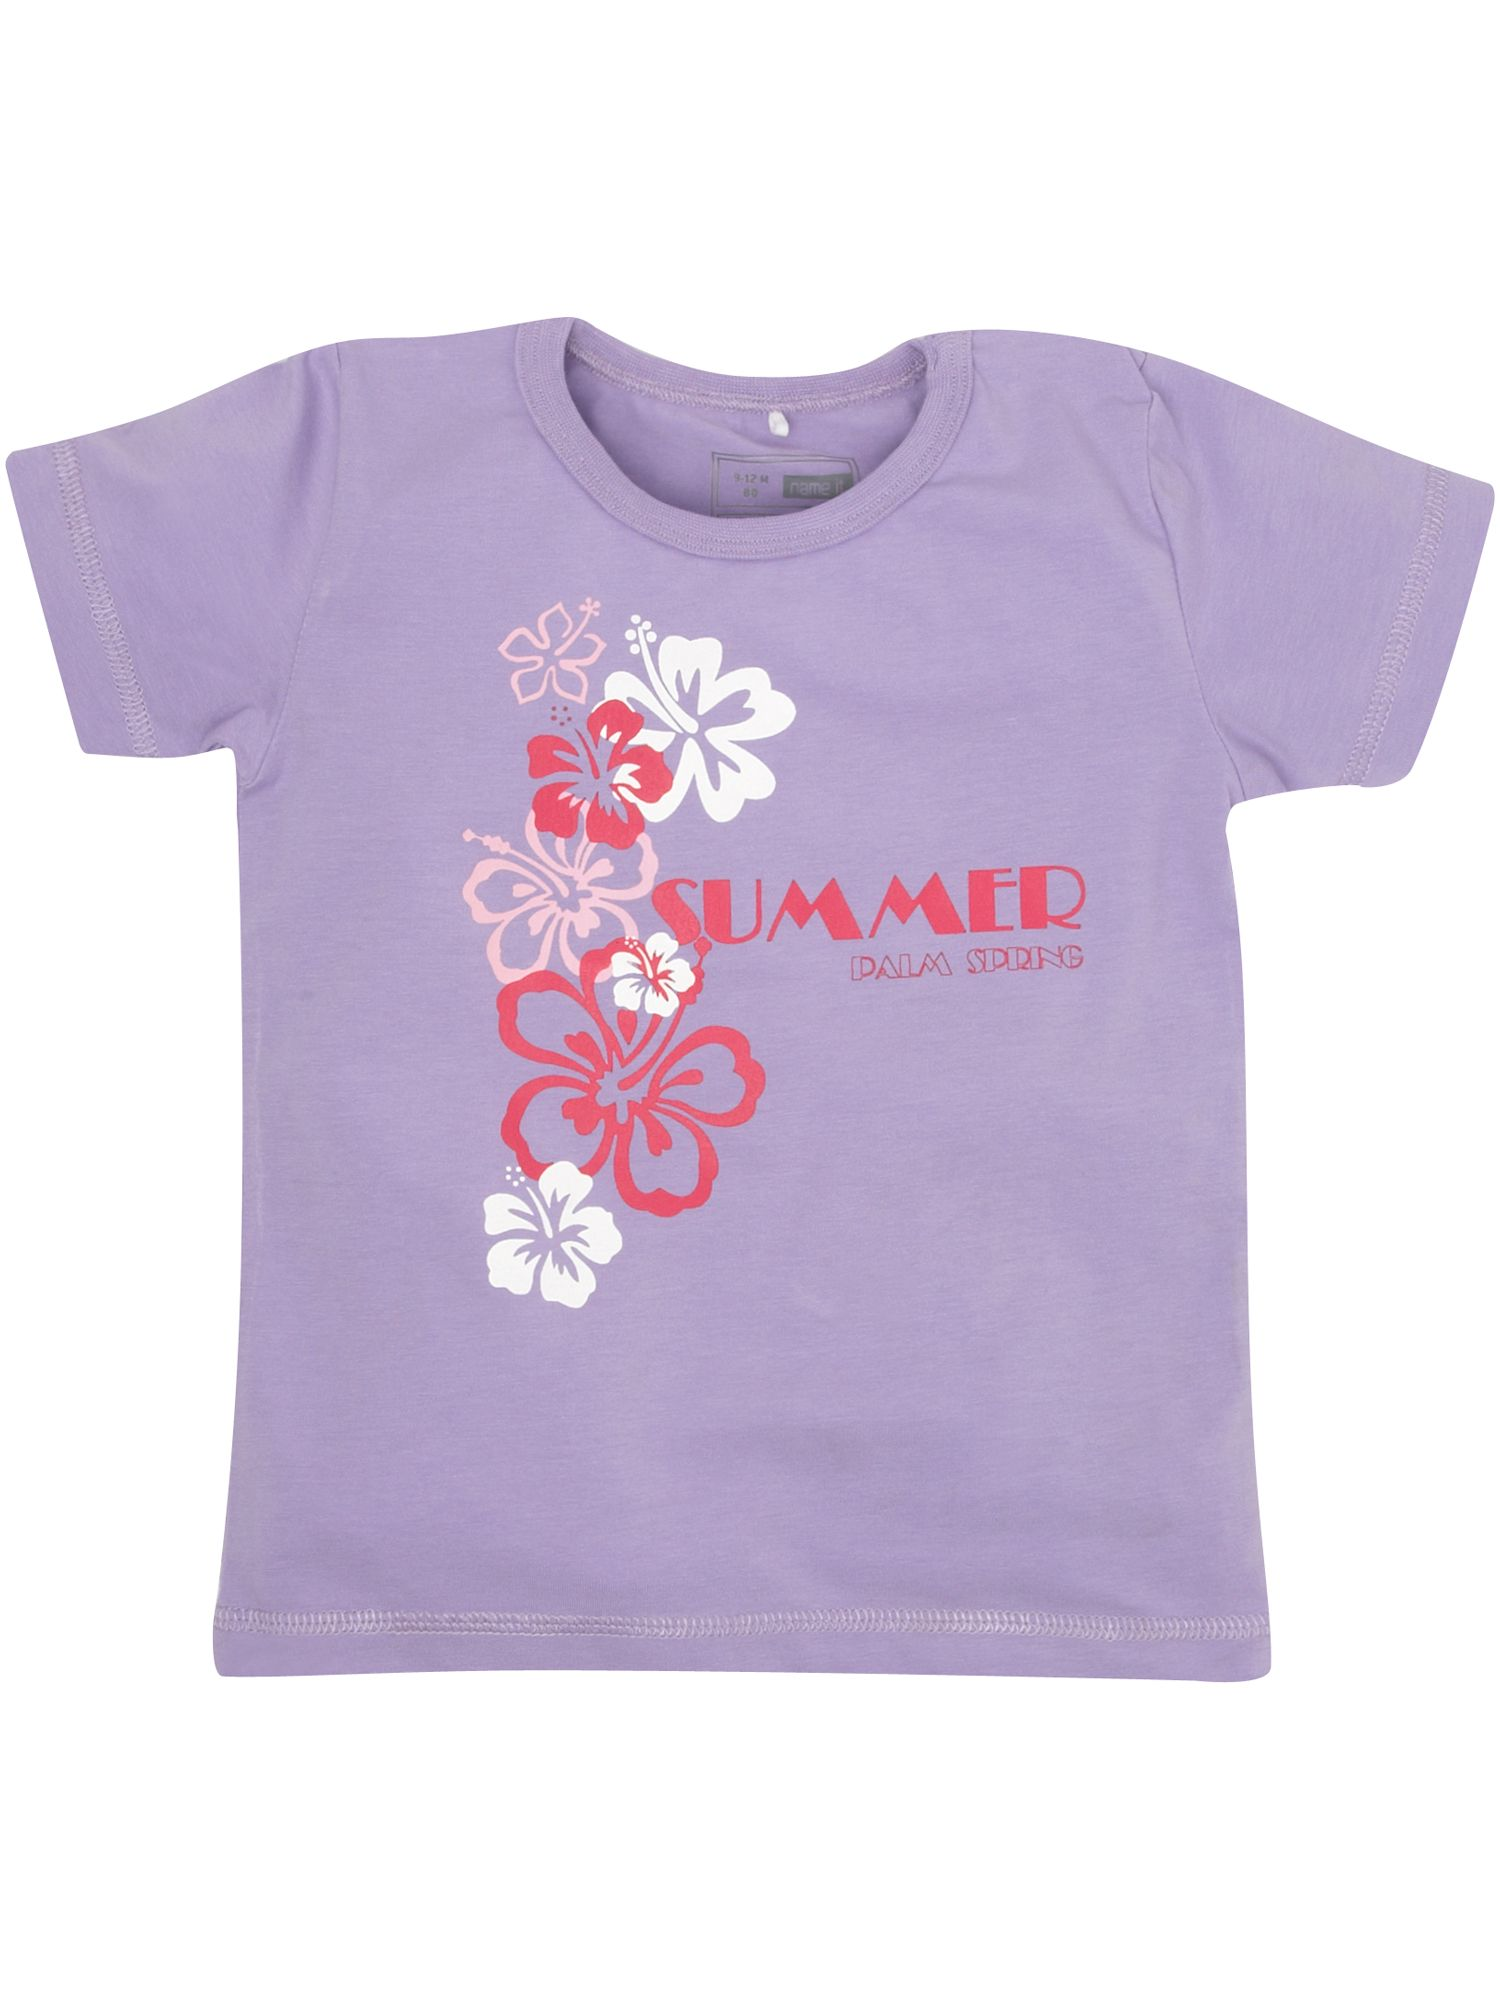 name it Short-sleeved flower printed T-shirt, product image